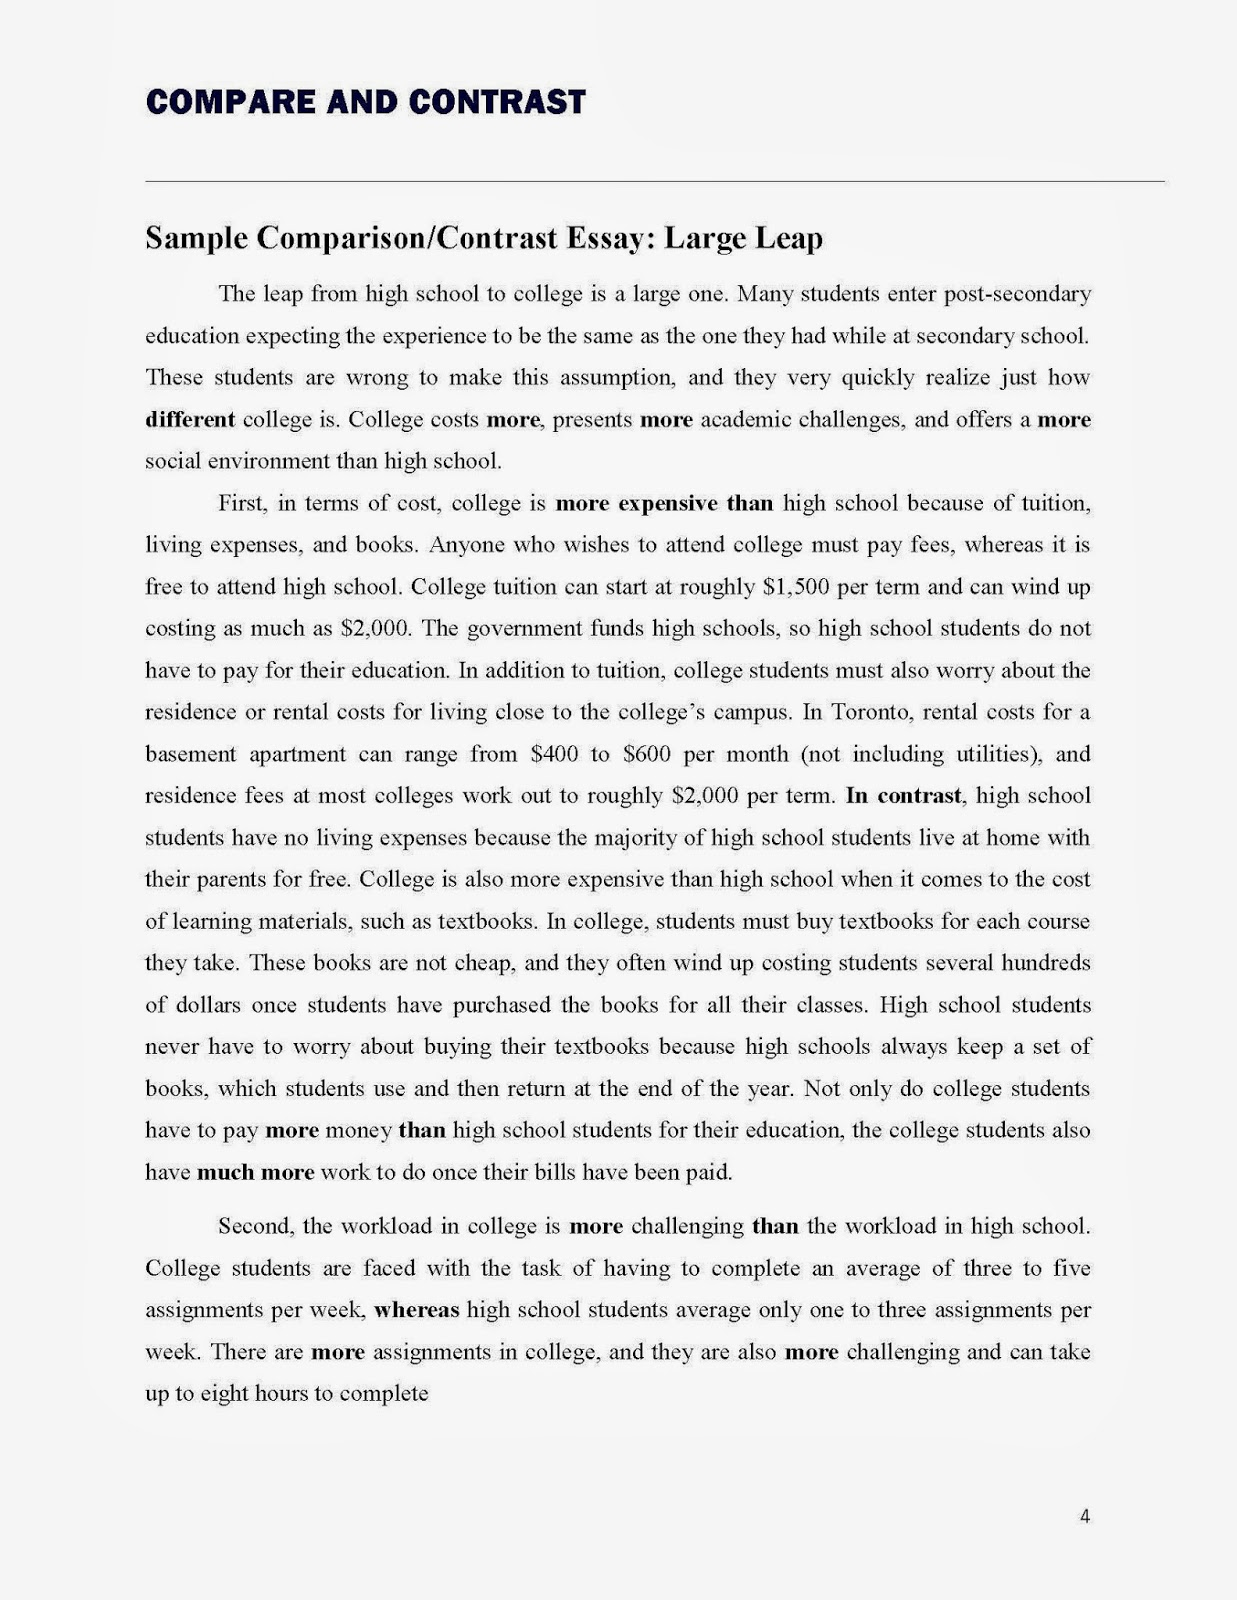 essay topics english essay ideas college essays college  the giver essay topics the giver essay topics ple dns the giver essay topics ple nodns